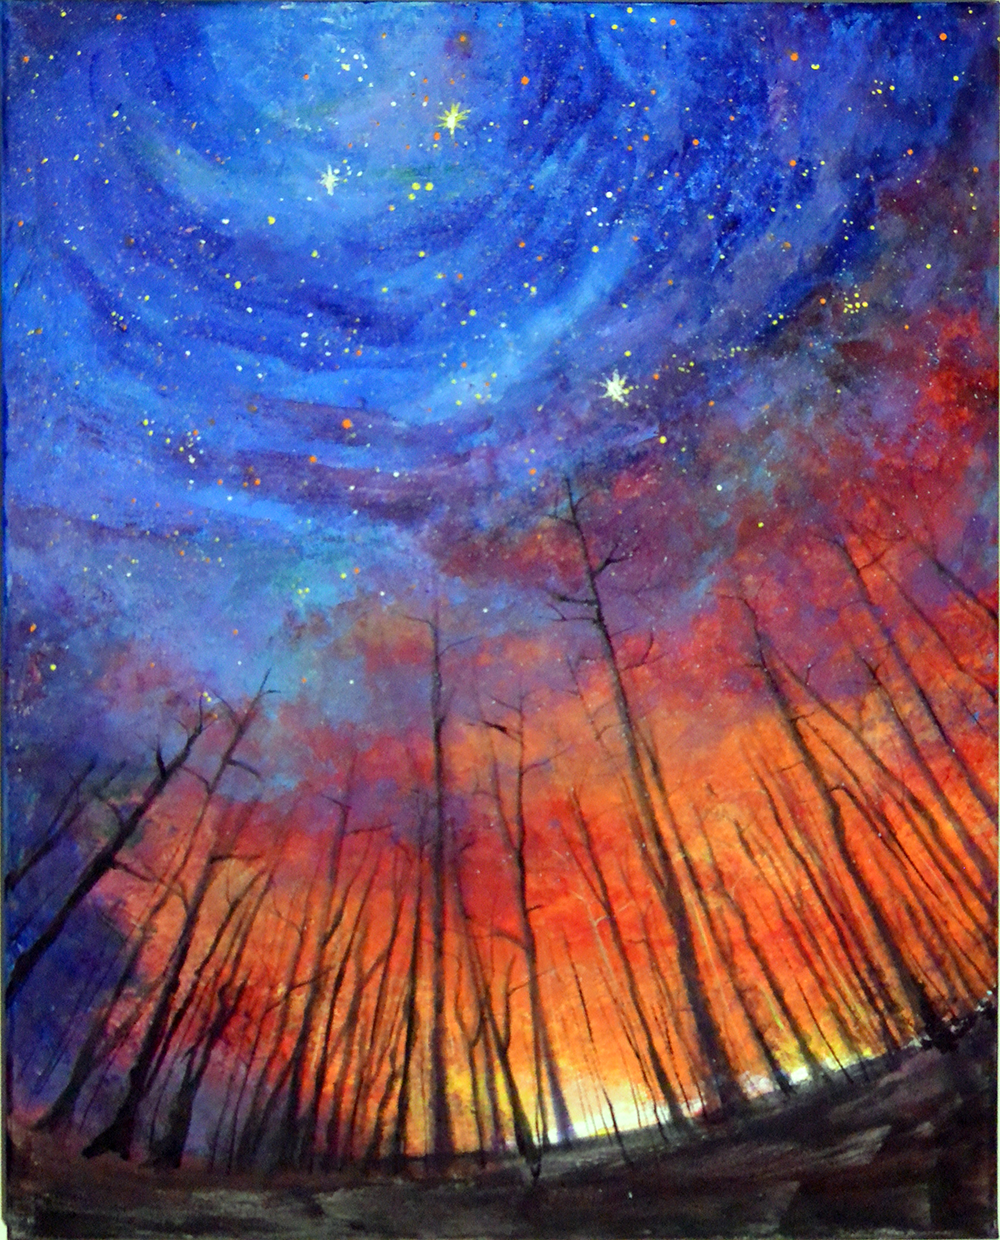 mimi-ama-sunset-16x20in-acrylic-canvasweb.png